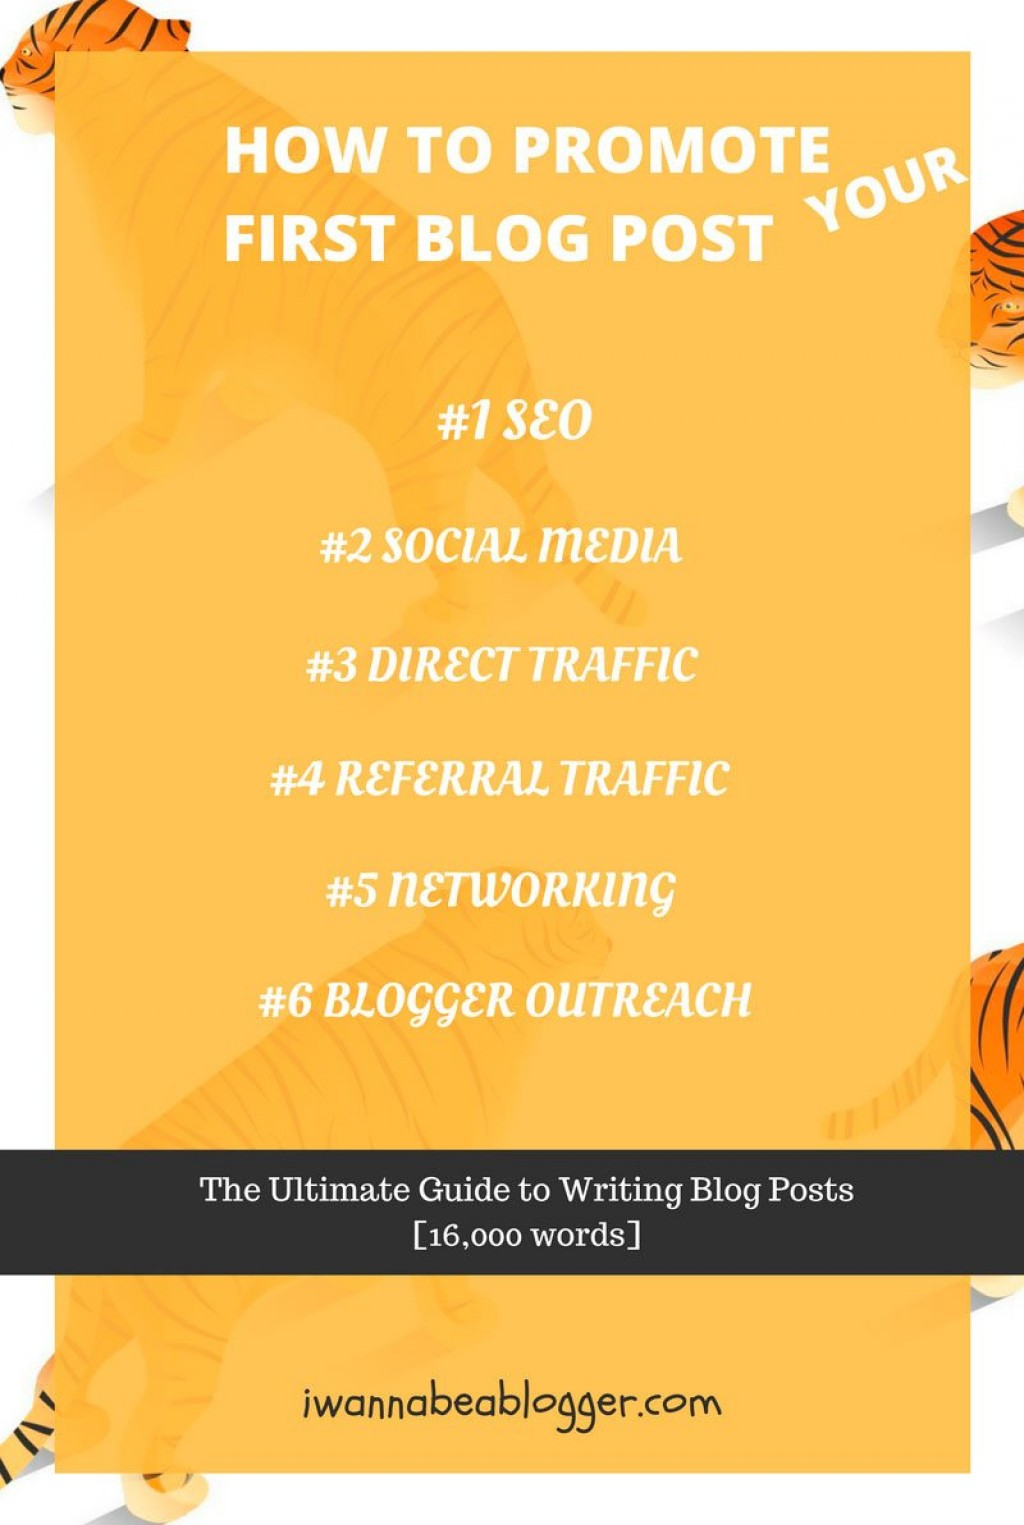 018 Introduce Yourself Essay Sample Words Example How To Promote First Blog Dreaded 100 Large